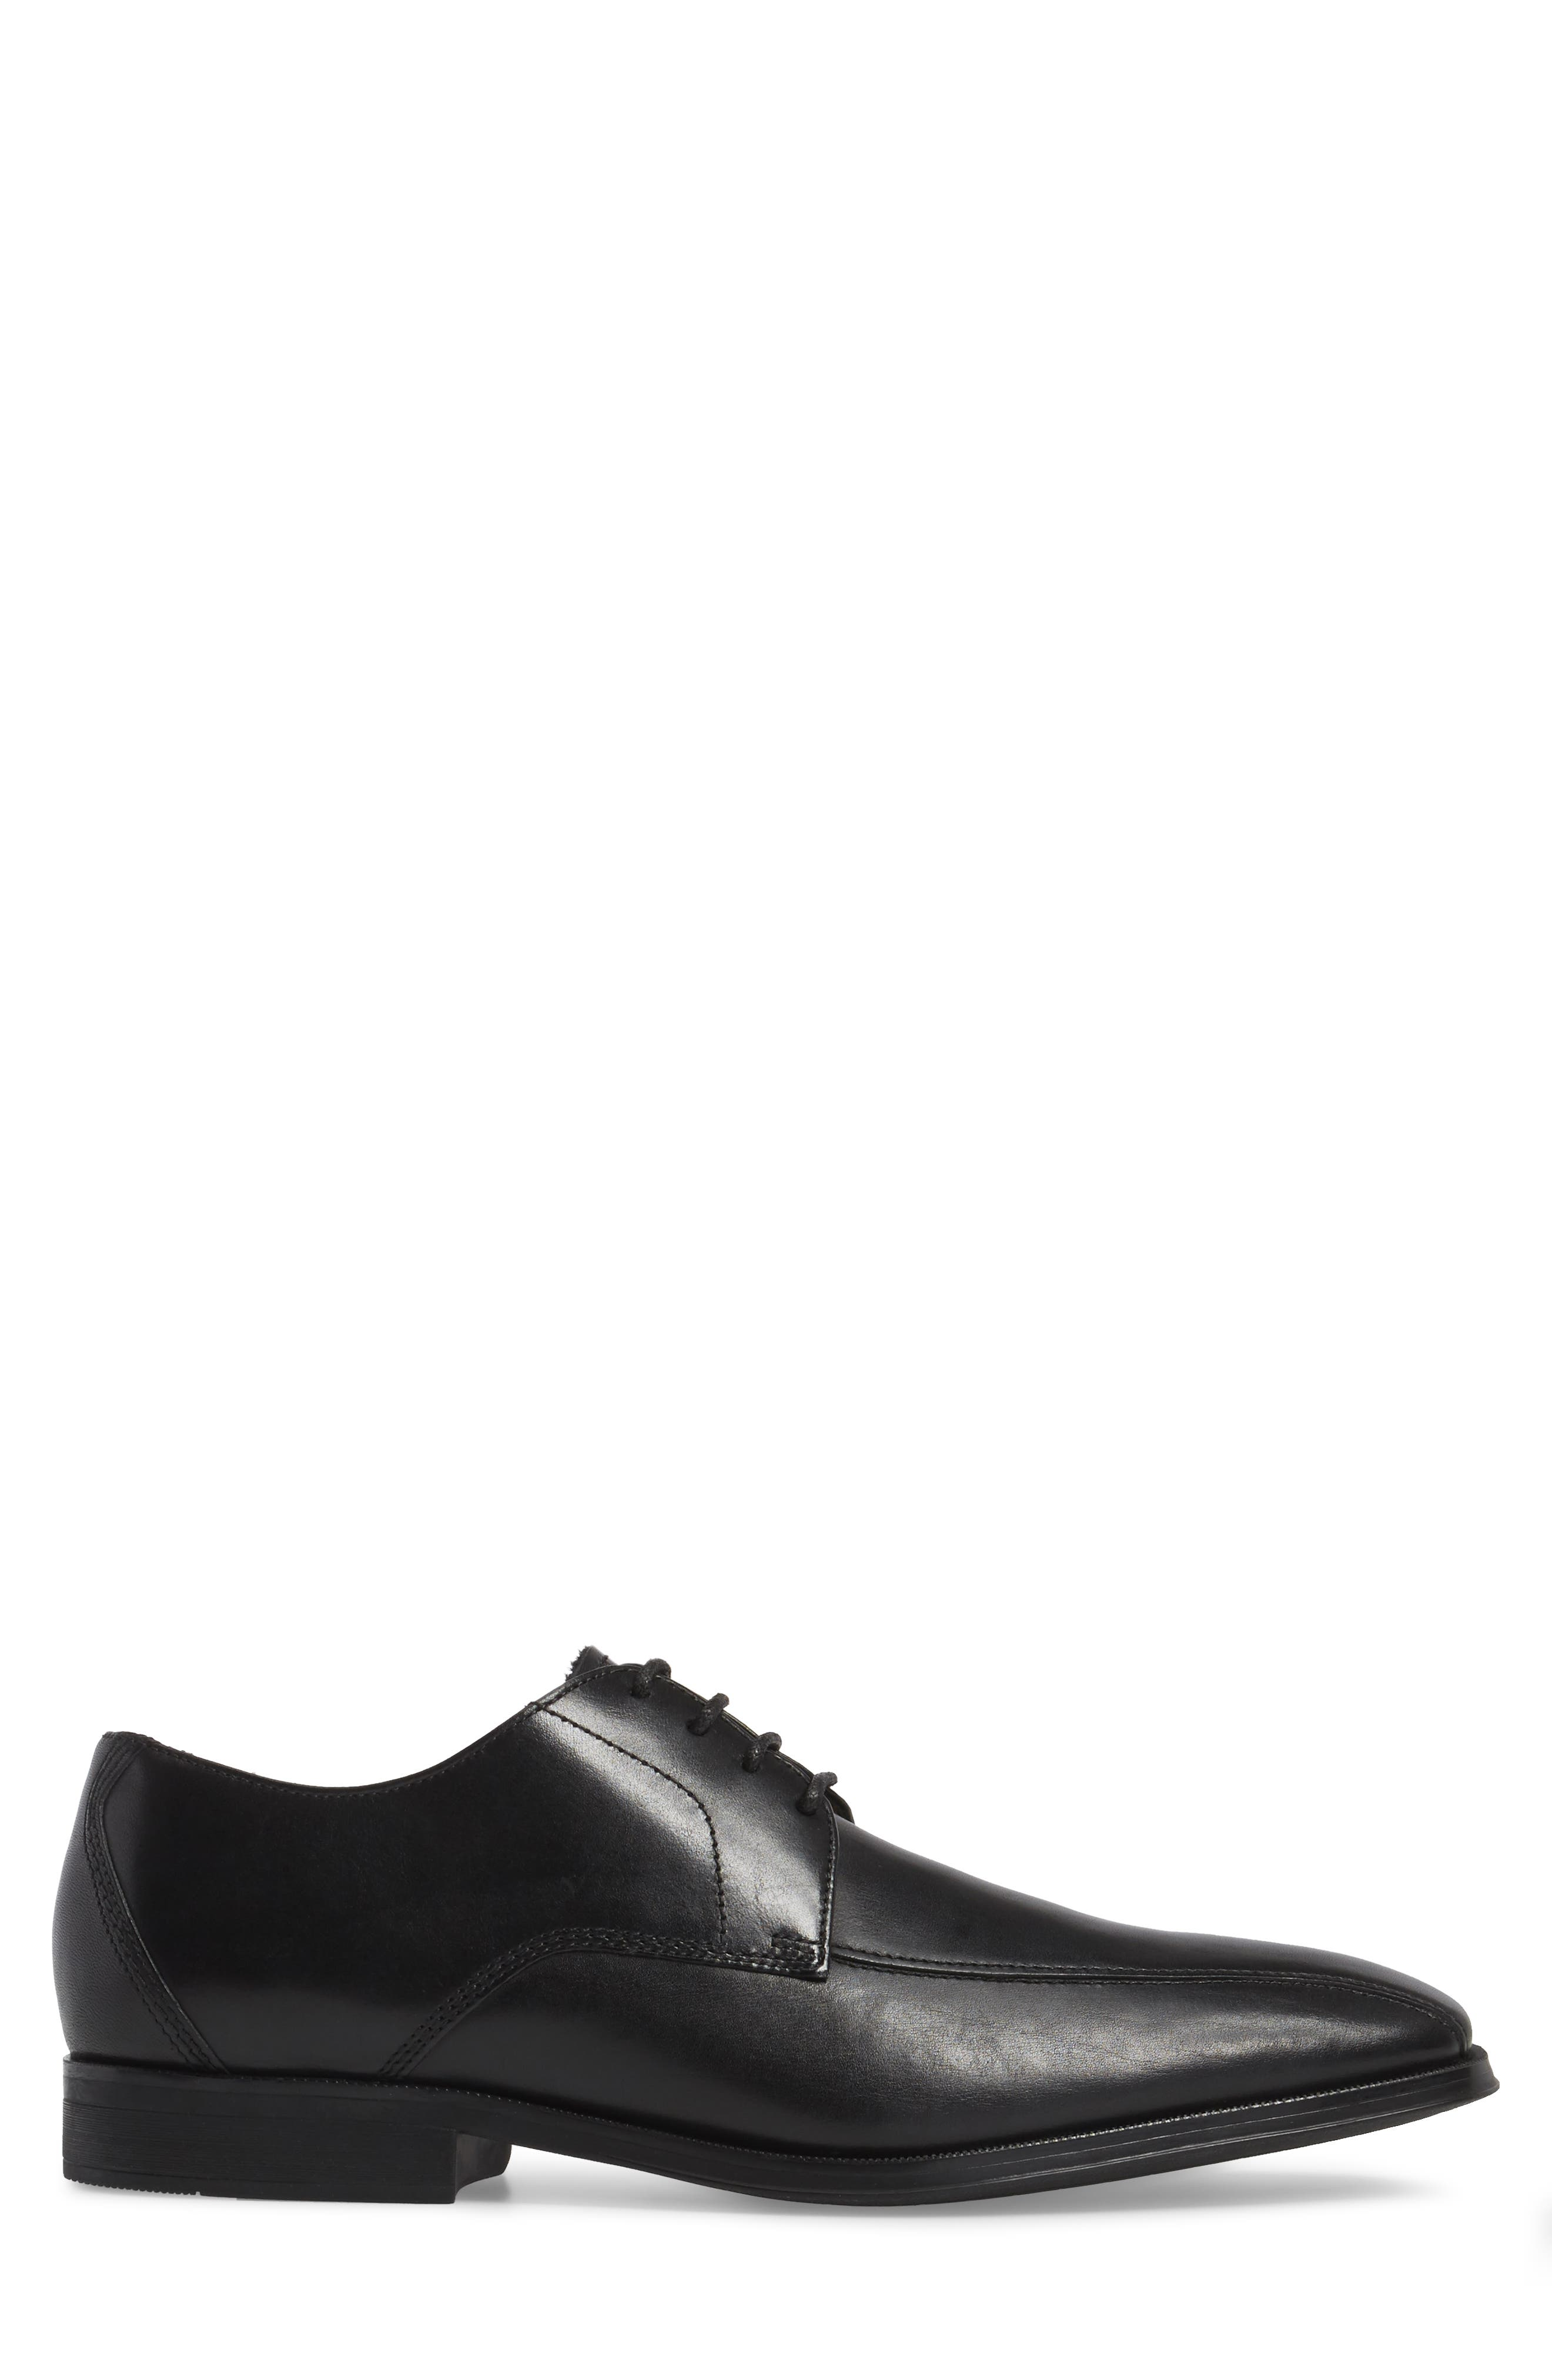 Clarks Gilman Mode Derby,                             Alternate thumbnail 3, color,                             BLACK LEATHER